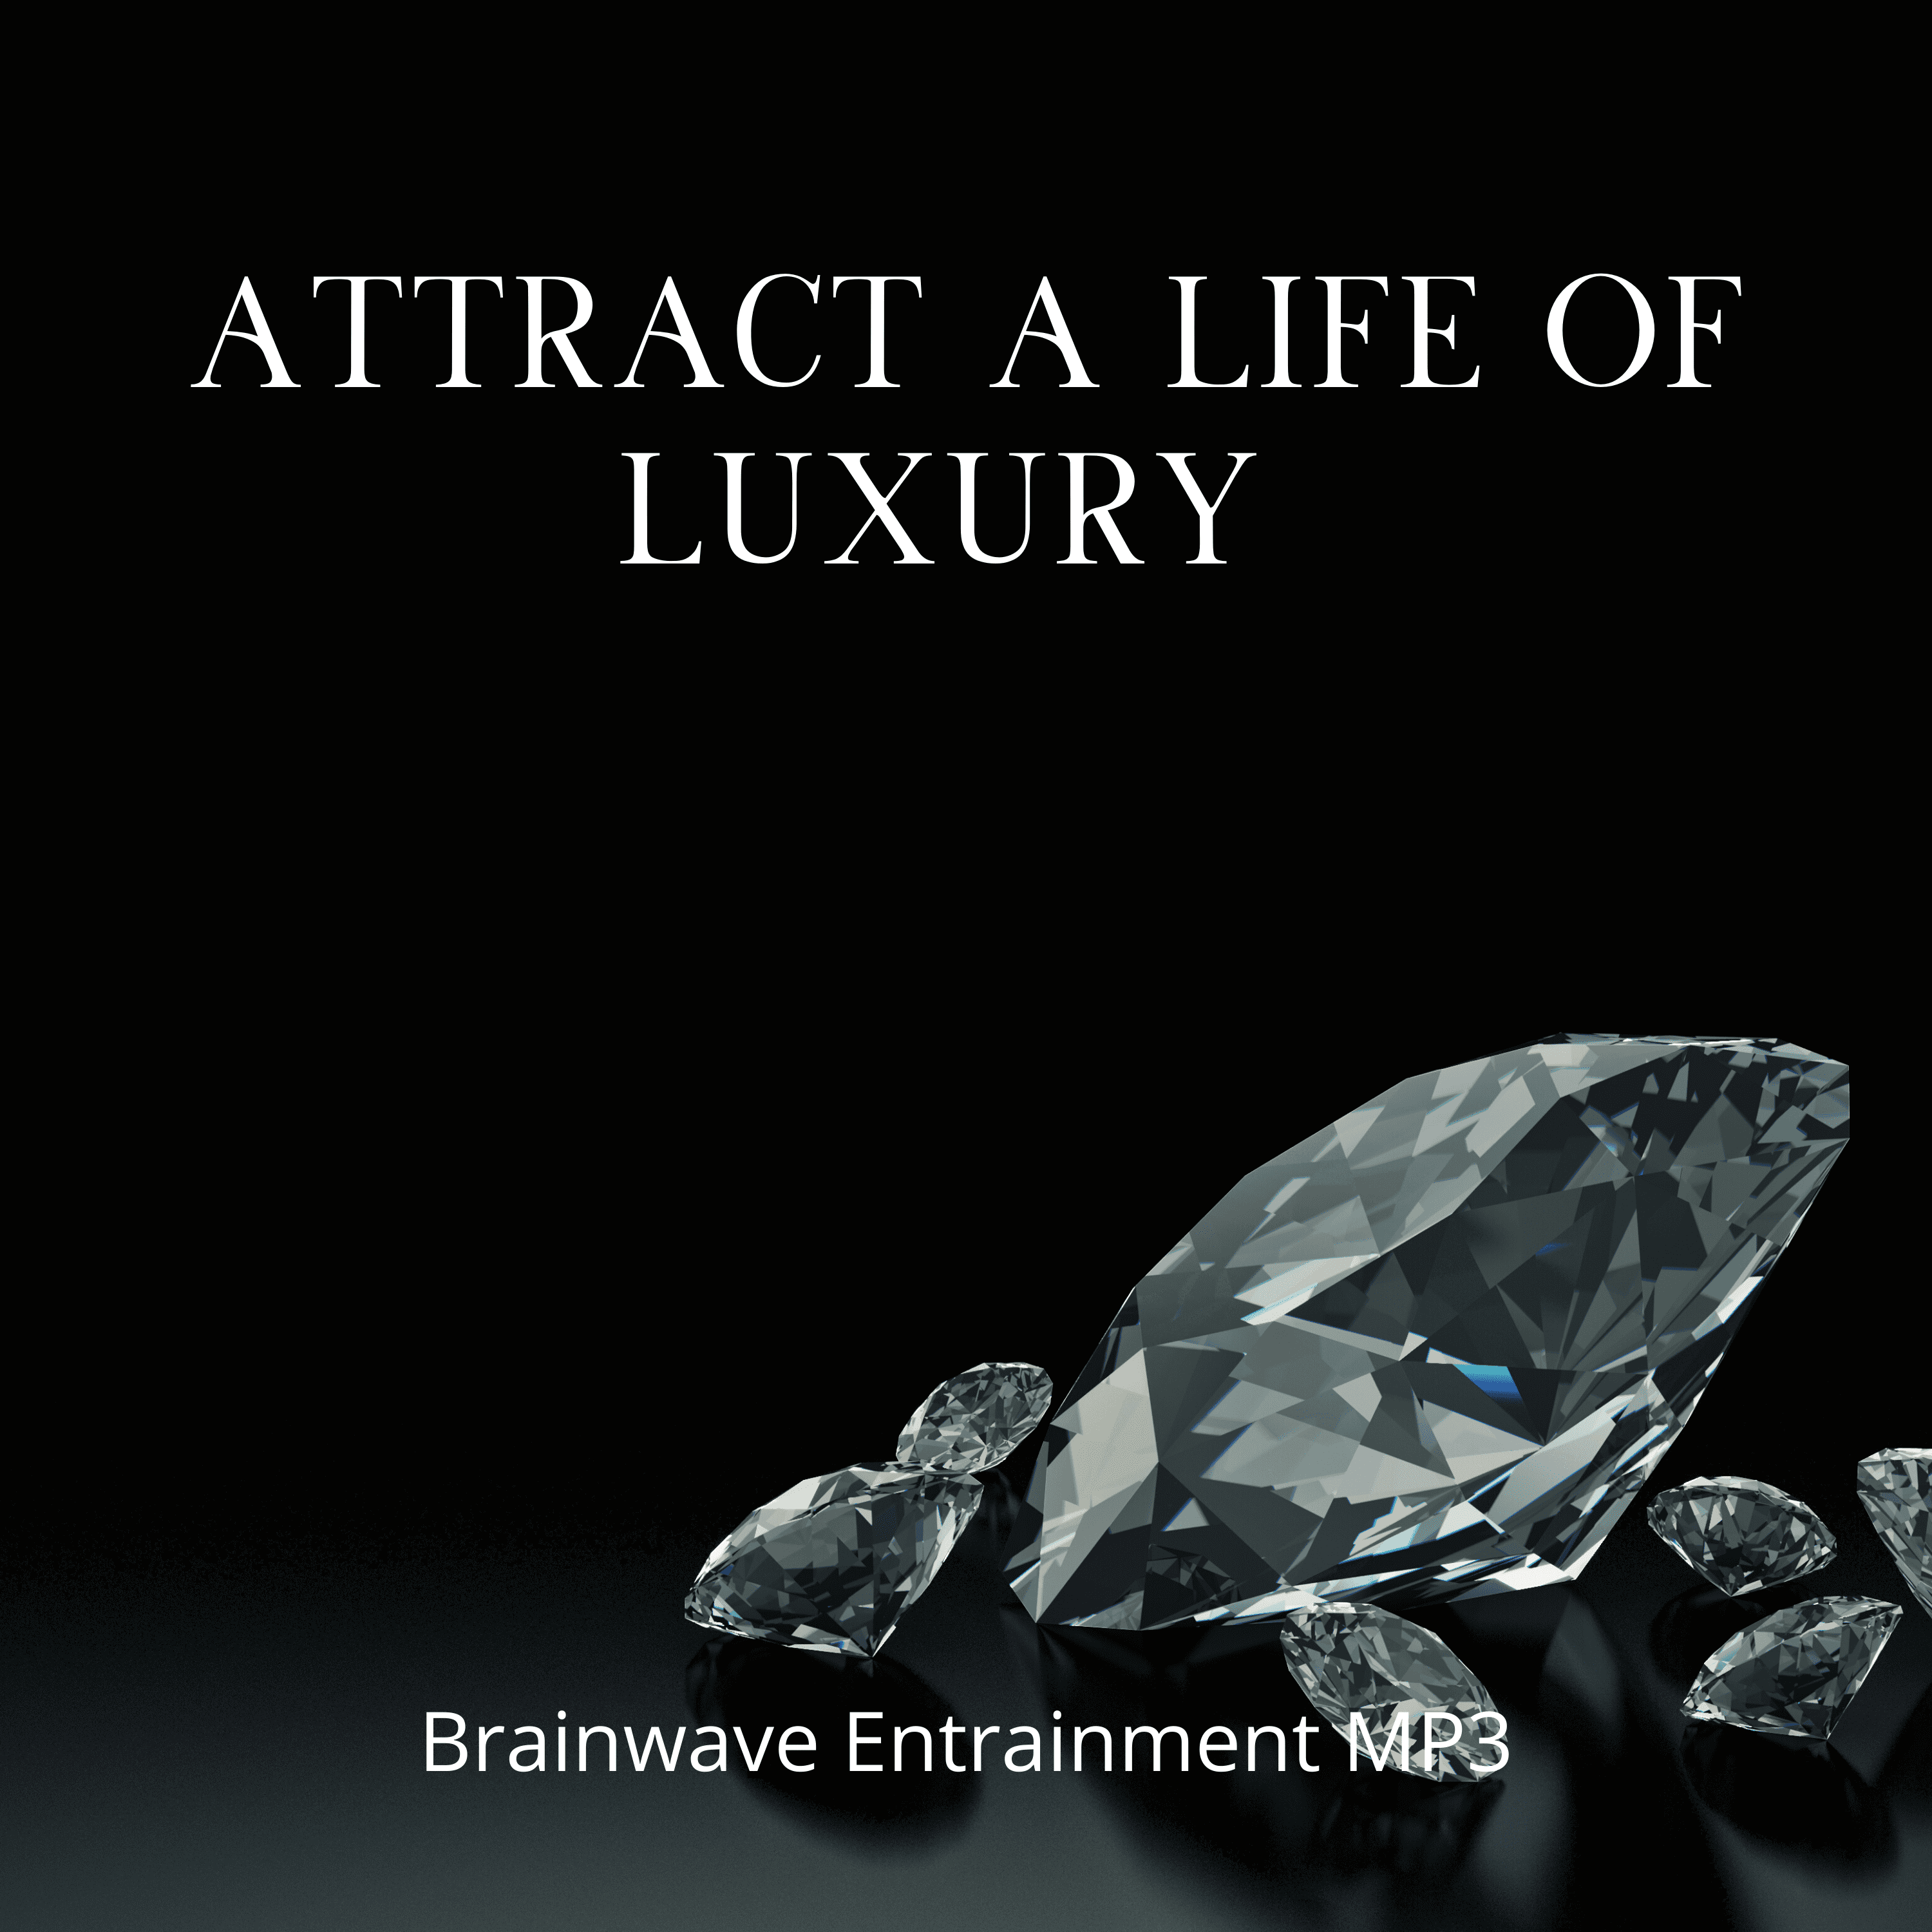 Attract A Life Of Luxury - Brainwave Entrainment MP3